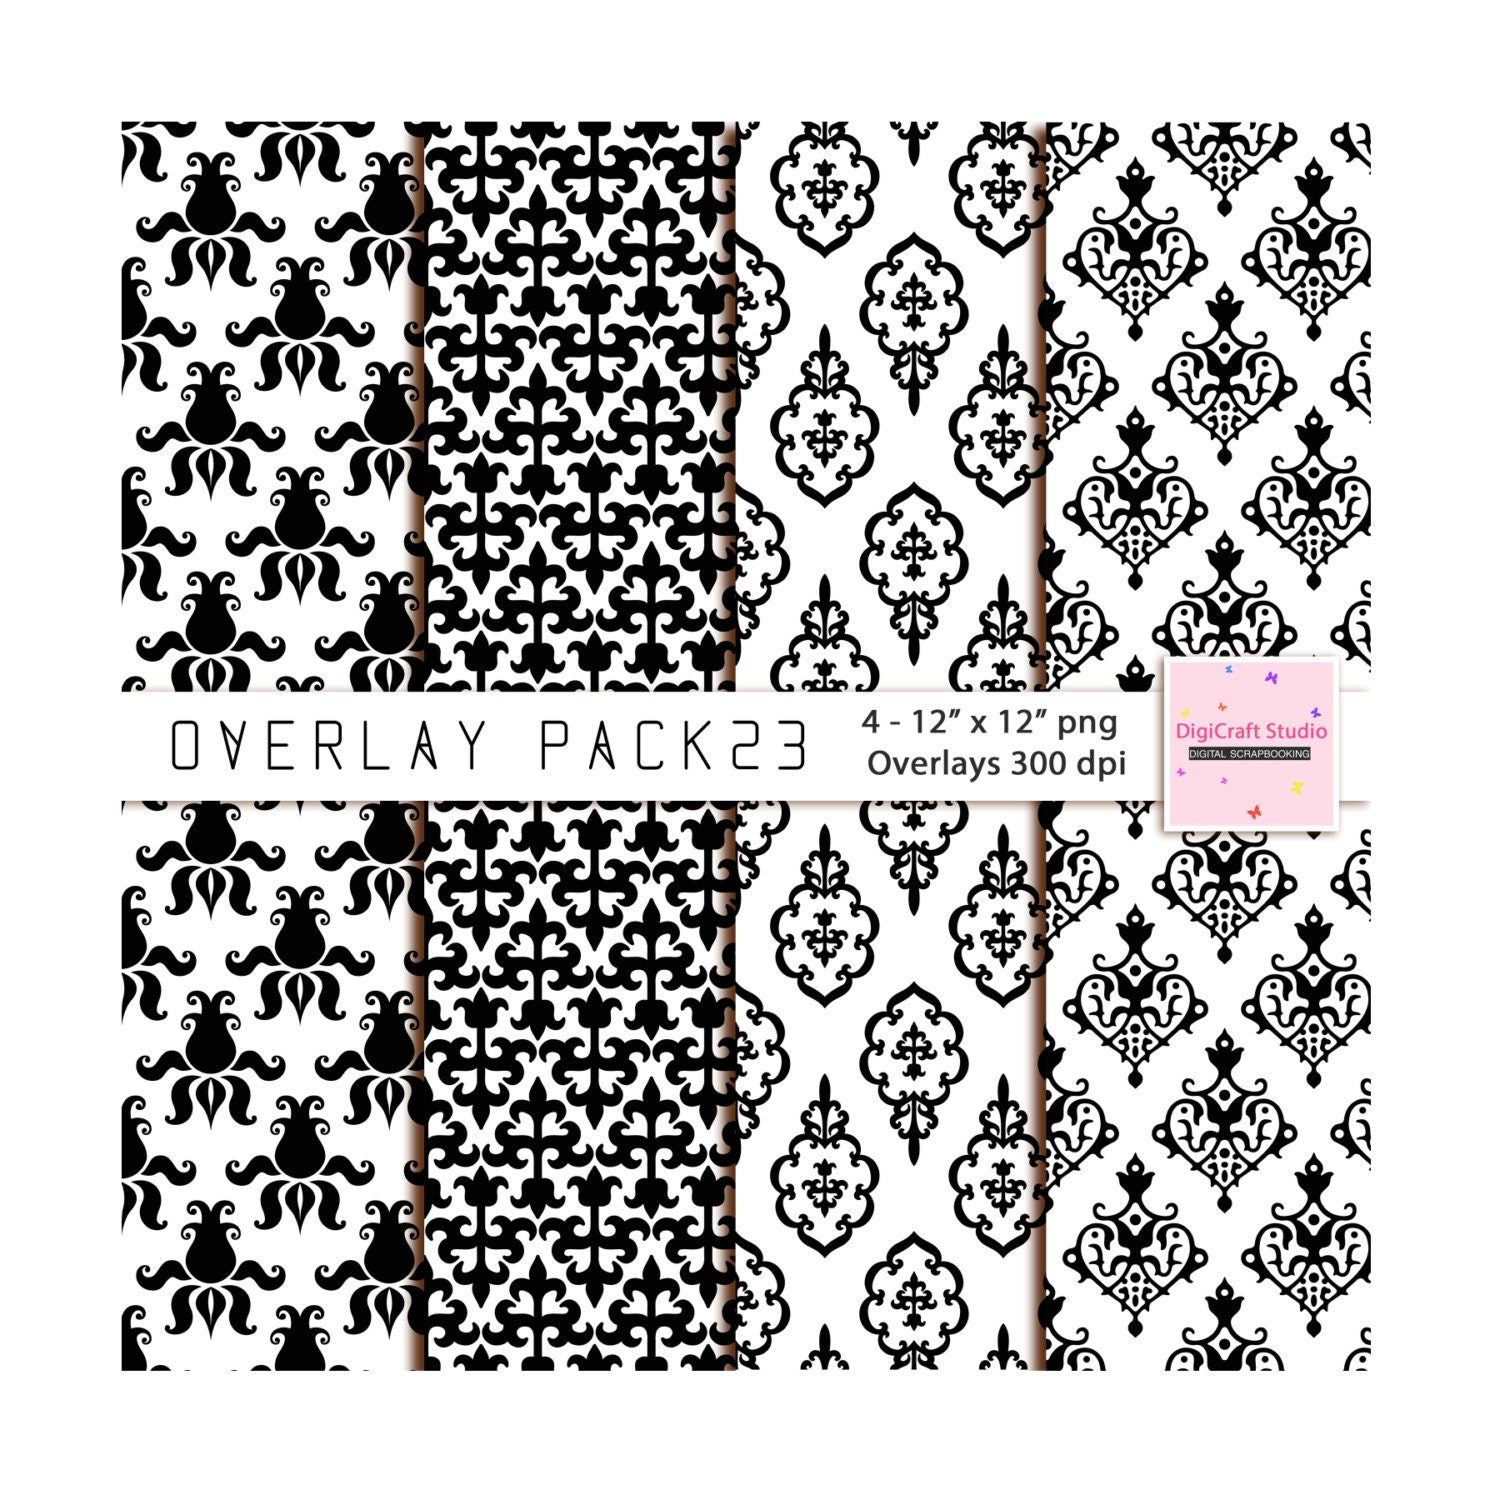 Scrapbook ideas black background - This Is A Digital File